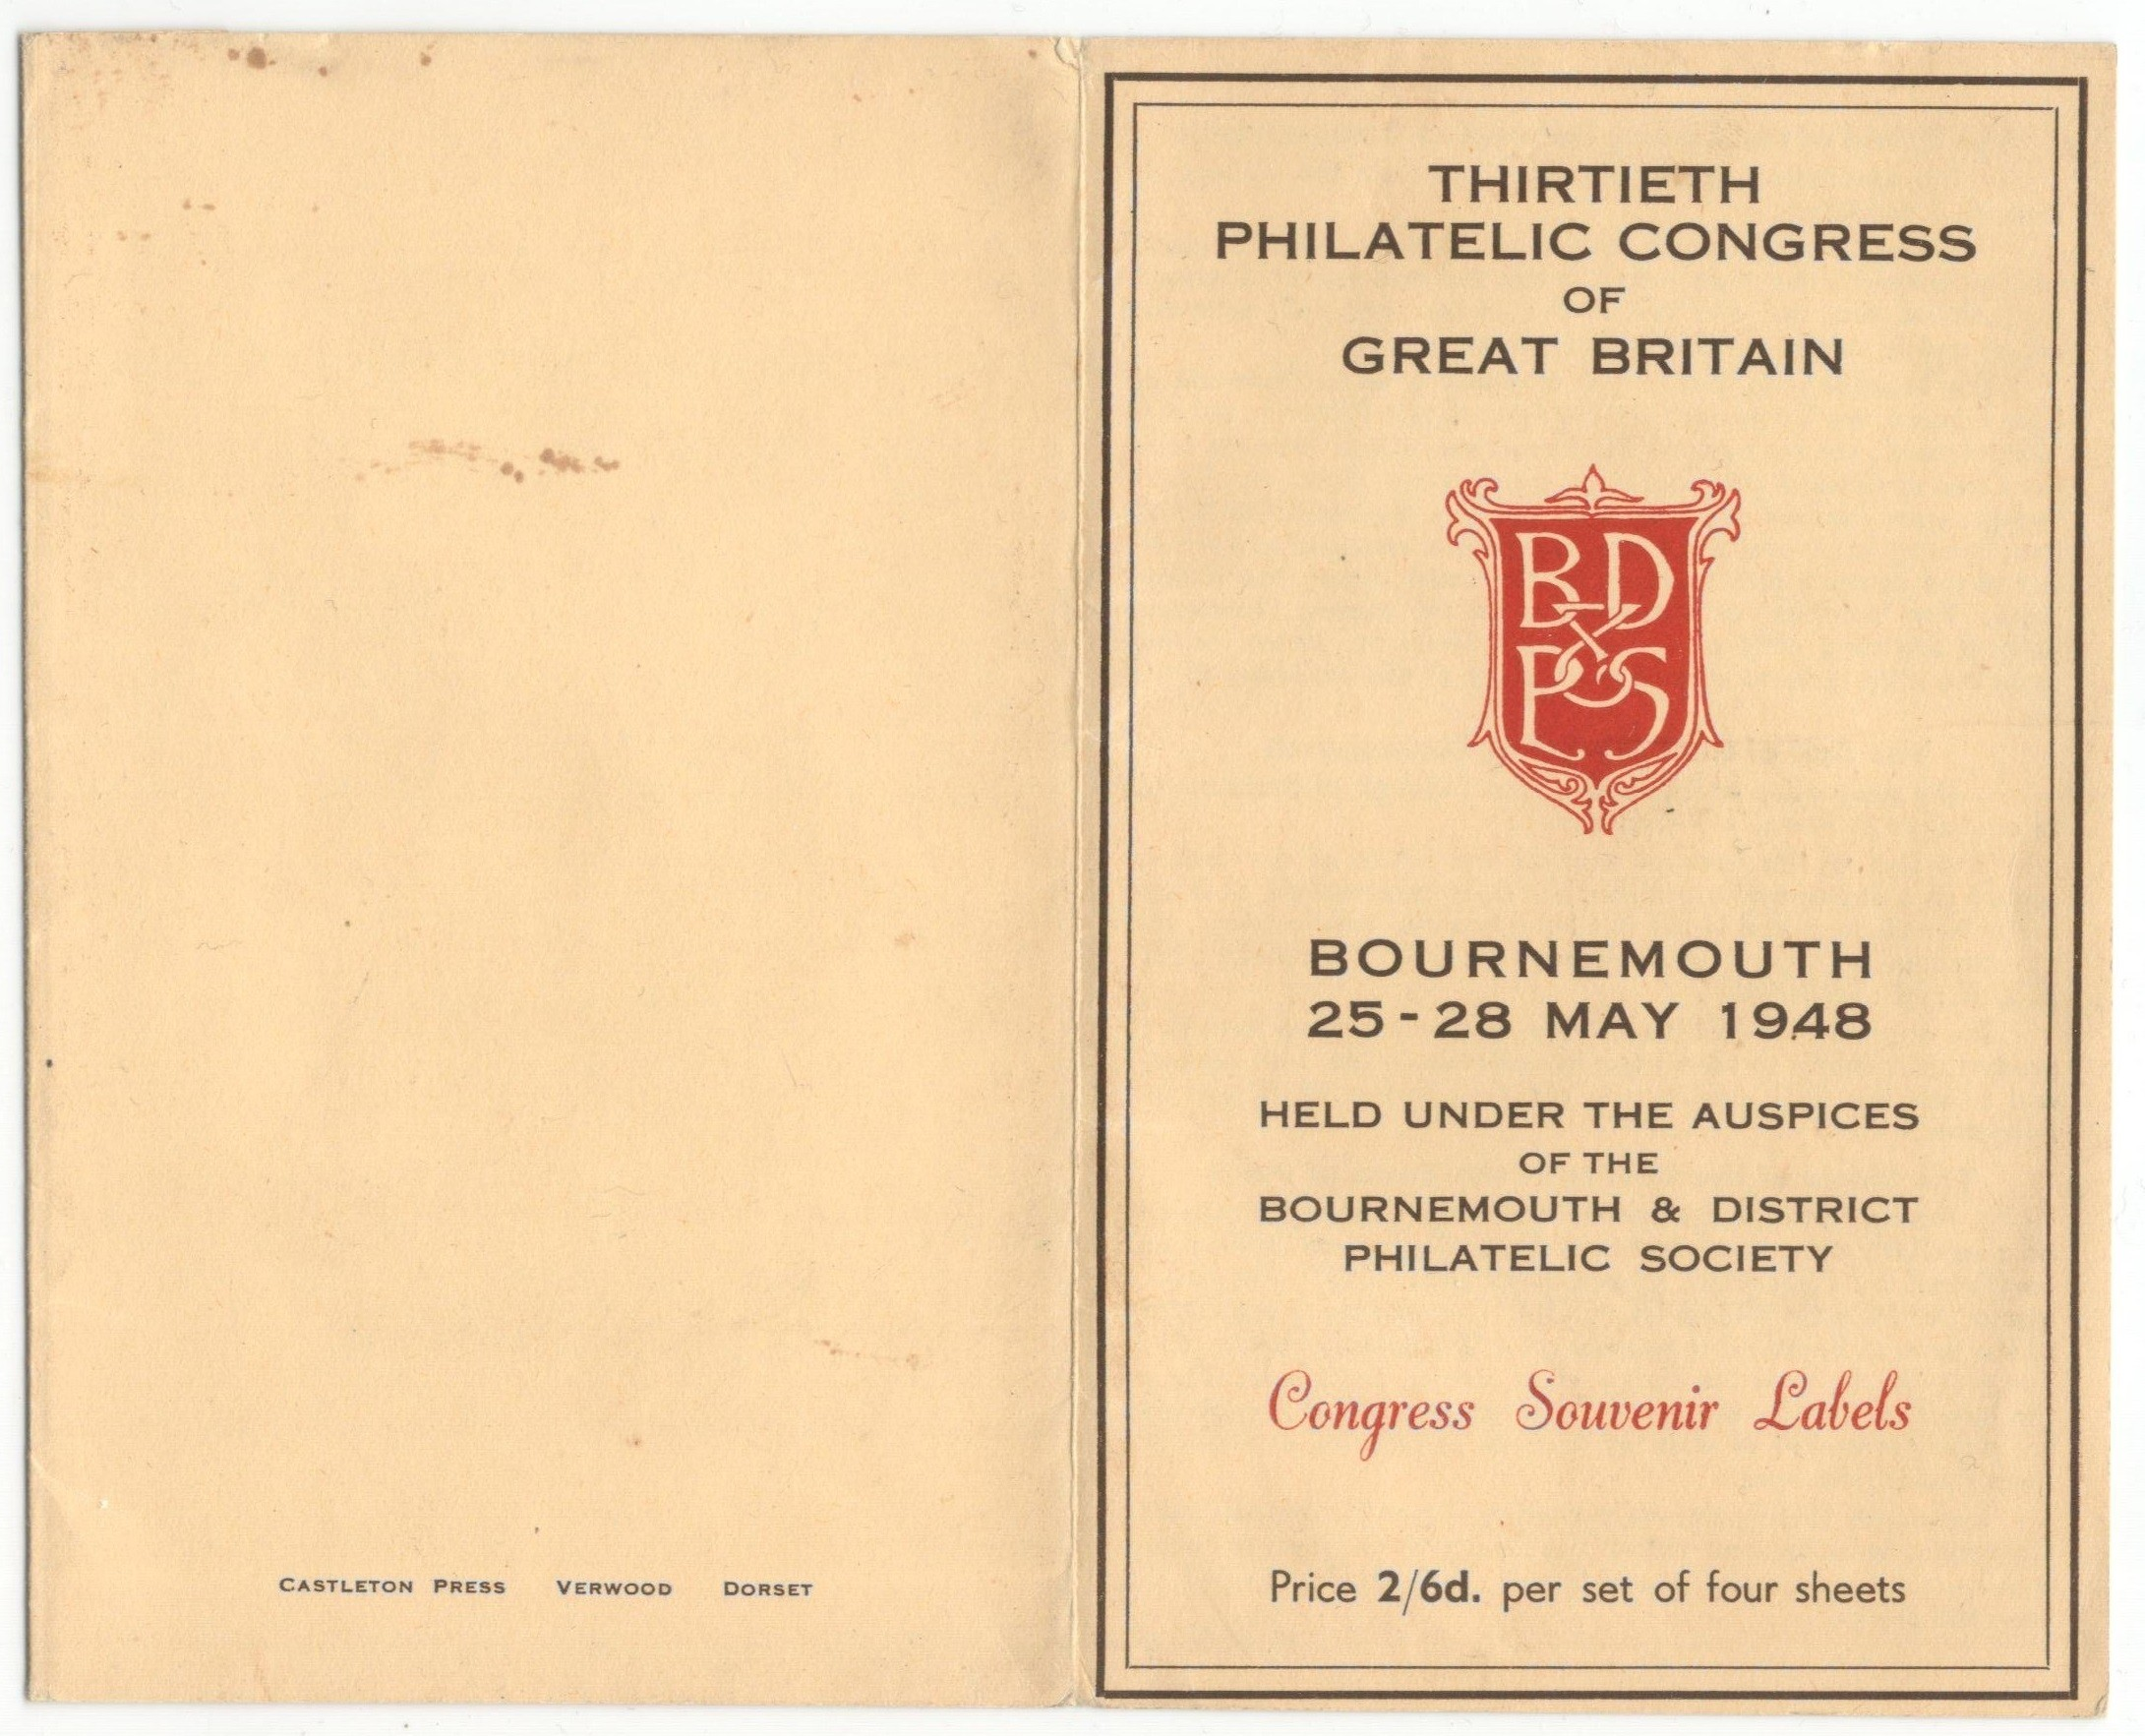 Lot 4 - 1948 BOURNEMOUTH Philatelic Congress of GB - Congress Souvenir Labels